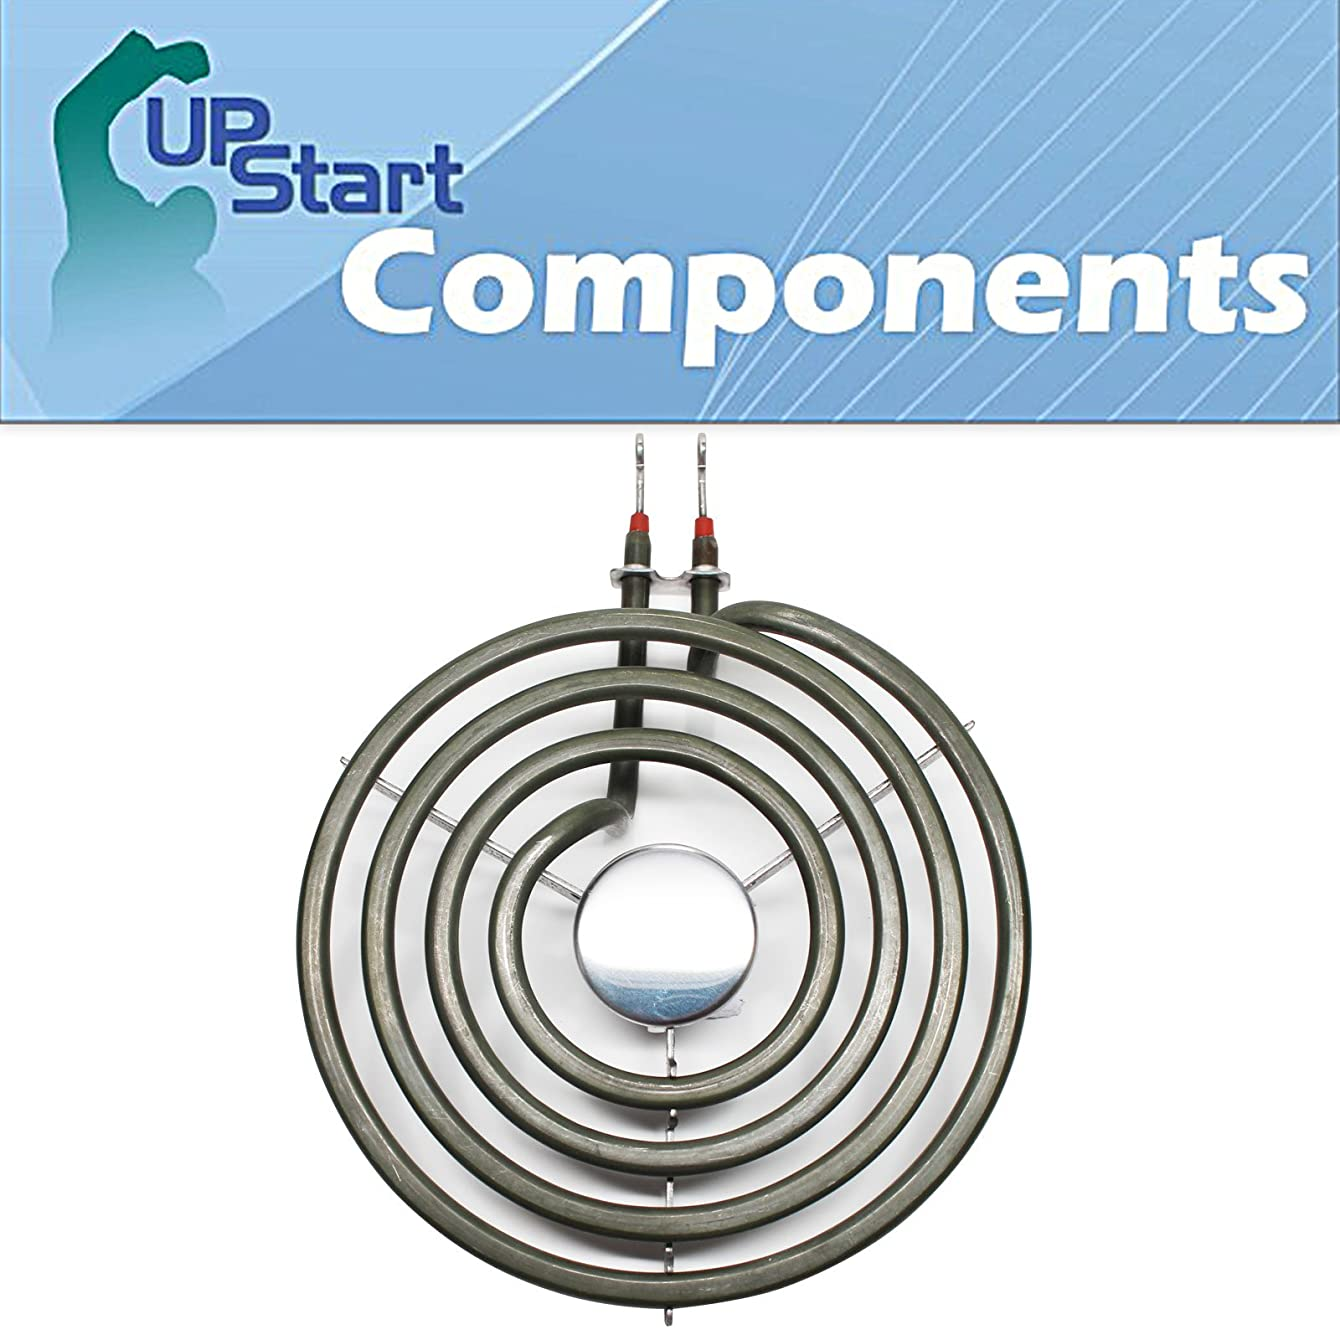 Replacement Whirlpool RF385PXGB2 6 inch 4 Turns Surface Burner Element - Compatible Whirlpool 660532 Heating Element for Range, Stove & Cooktop